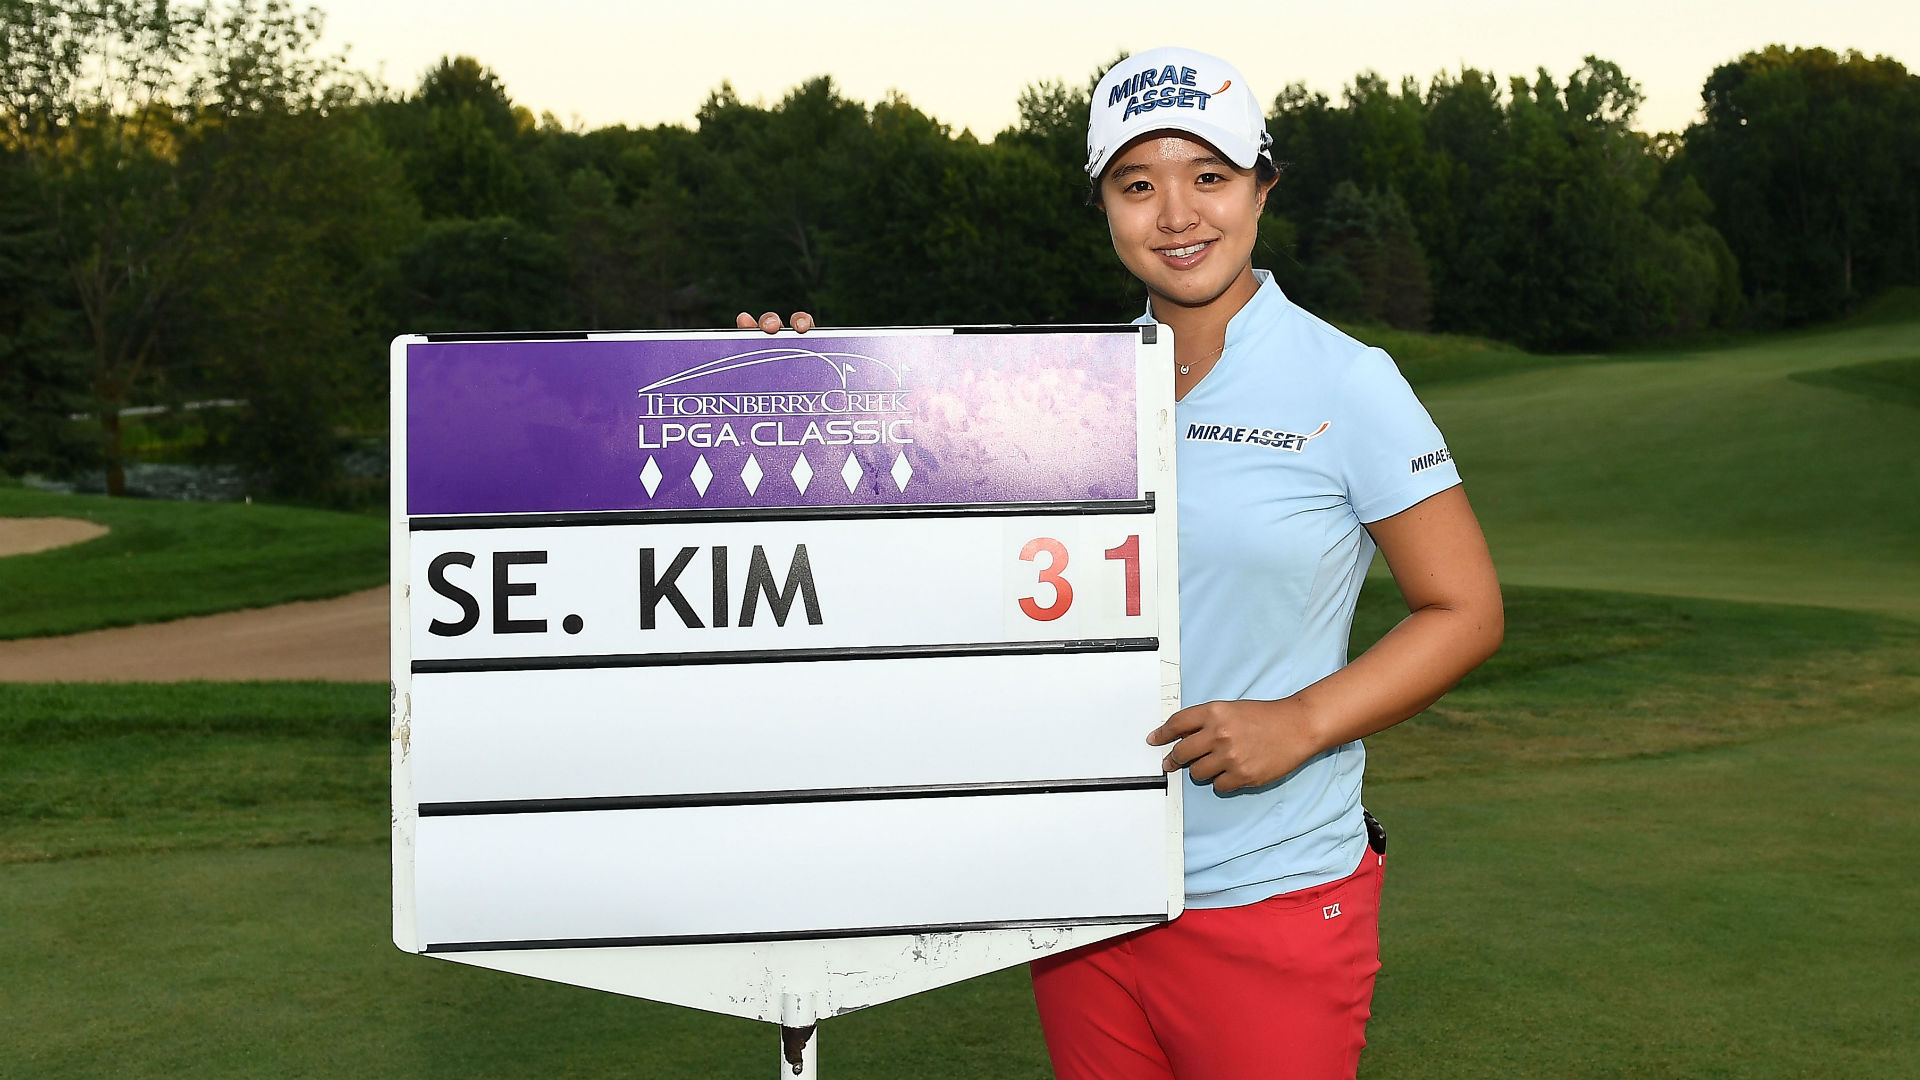 There was no stopping Kim Sei-young at the Thornberry Creek LPGA Classic, as she made history with a winning score of 31 under par.